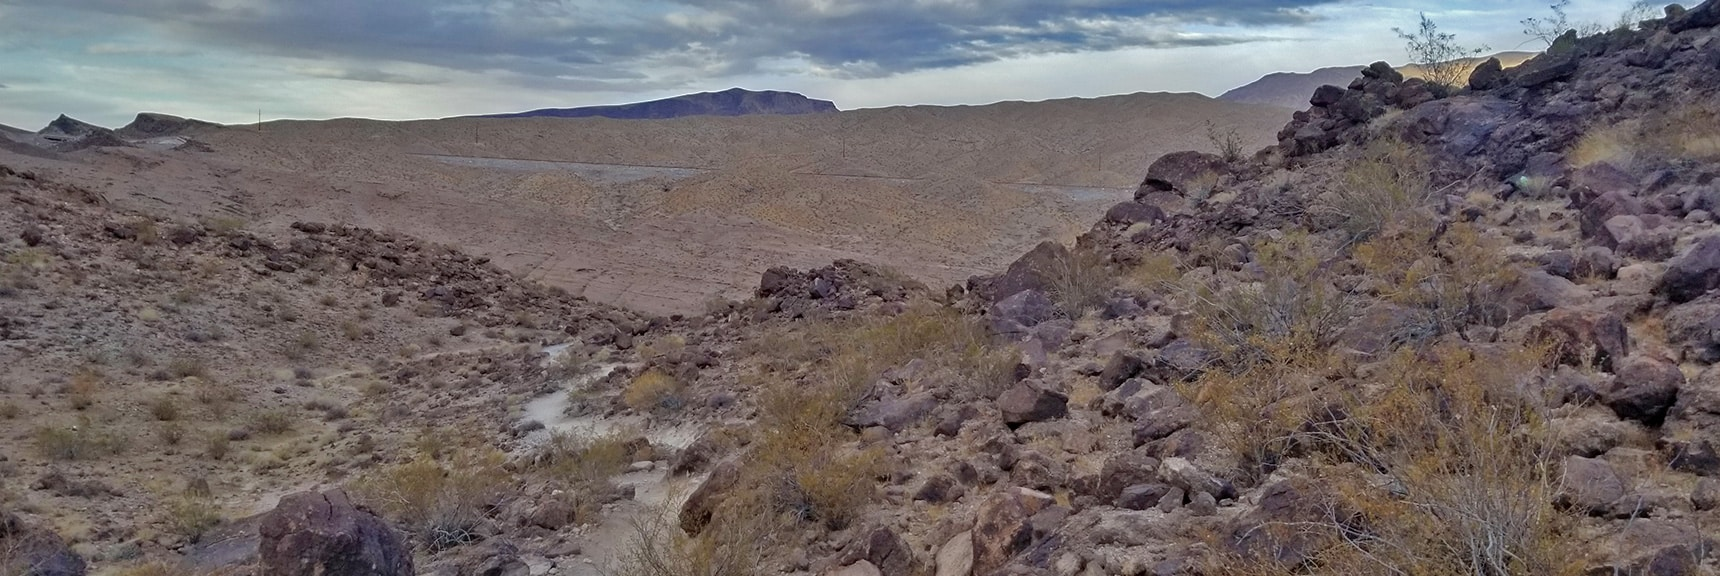 Descending Into White Rock Canyon. Highway 93 In View. | Arizona Hot Spring | Liberty Bell Arch | Lake Mead National Recreation Area, Arizona